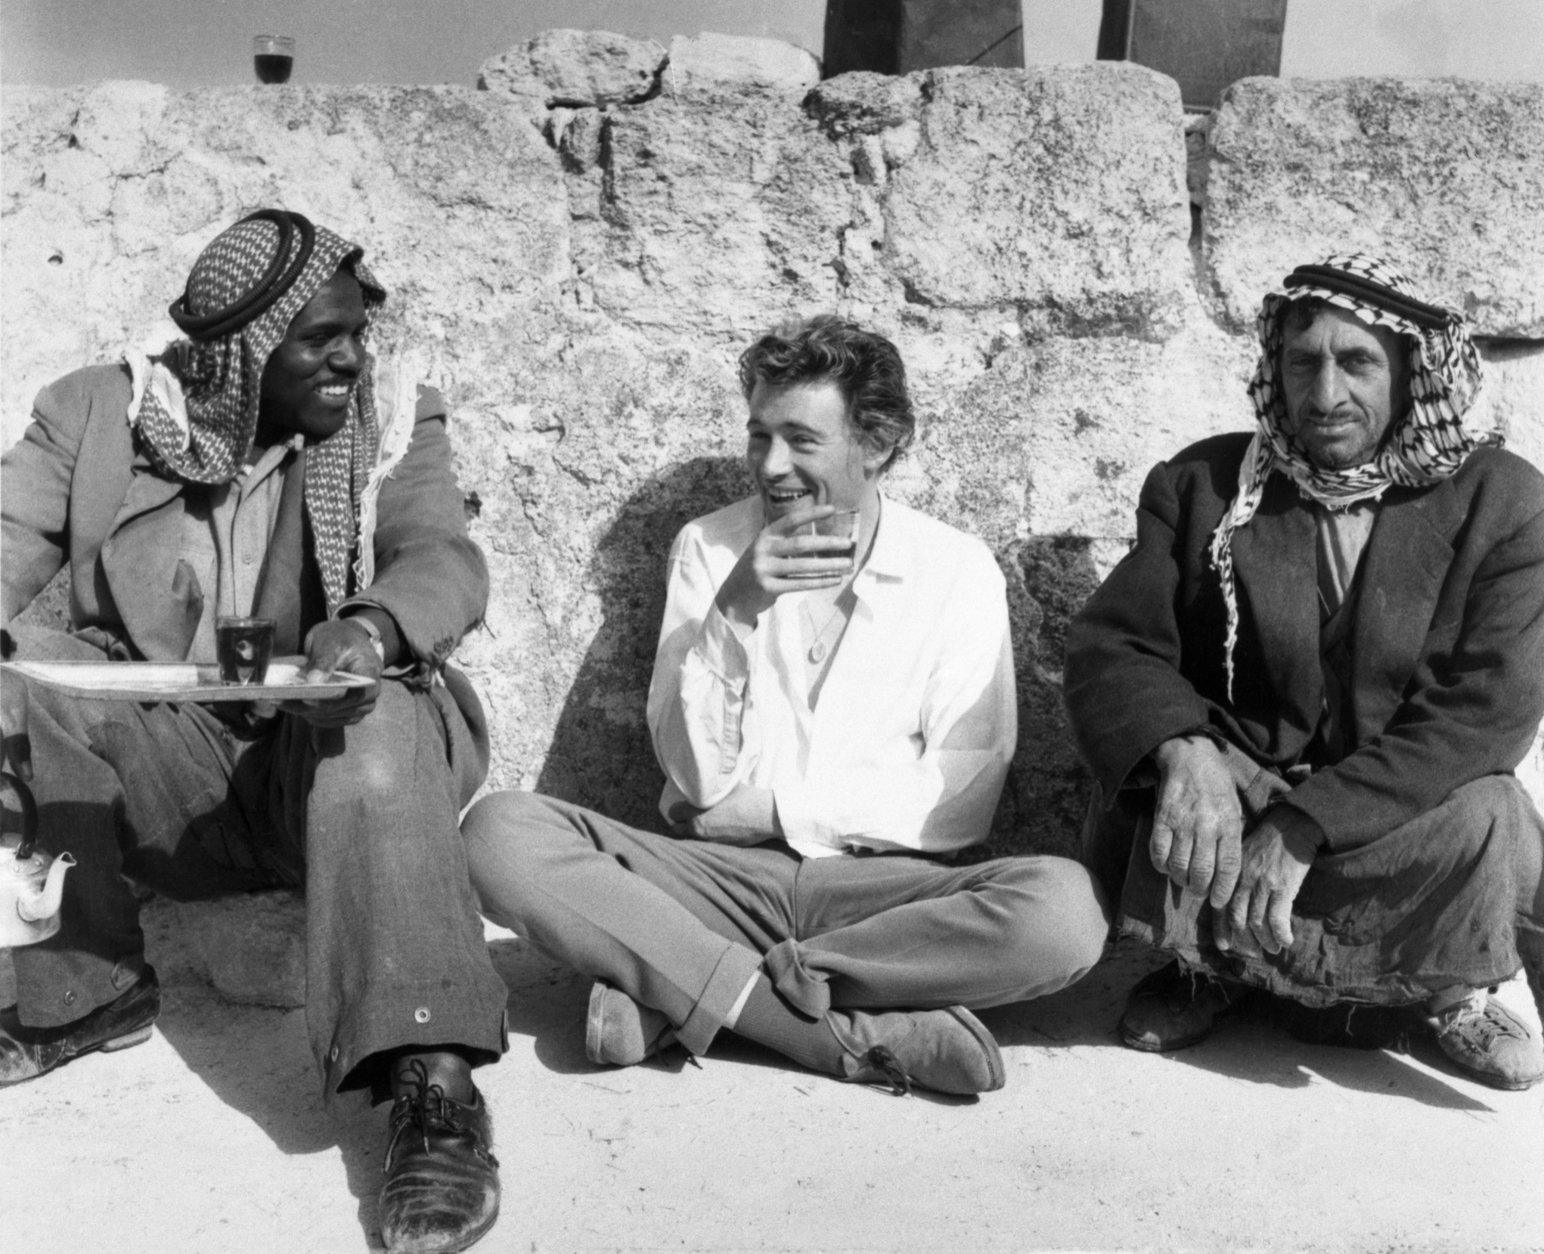 "Peter O'Toole, center, the Irish actor who is to play the title role in the film ""Lawrence of Arabia"" squats on the dusty ground as he takes a glass of tea with a couple of Beduin farmers on April 20, 1961 in Amman, Jordan. O'Toole has spent several weeeks among the Jordanian Arabs learning their language, local customs and how to ride a camel. (AP Photo)"